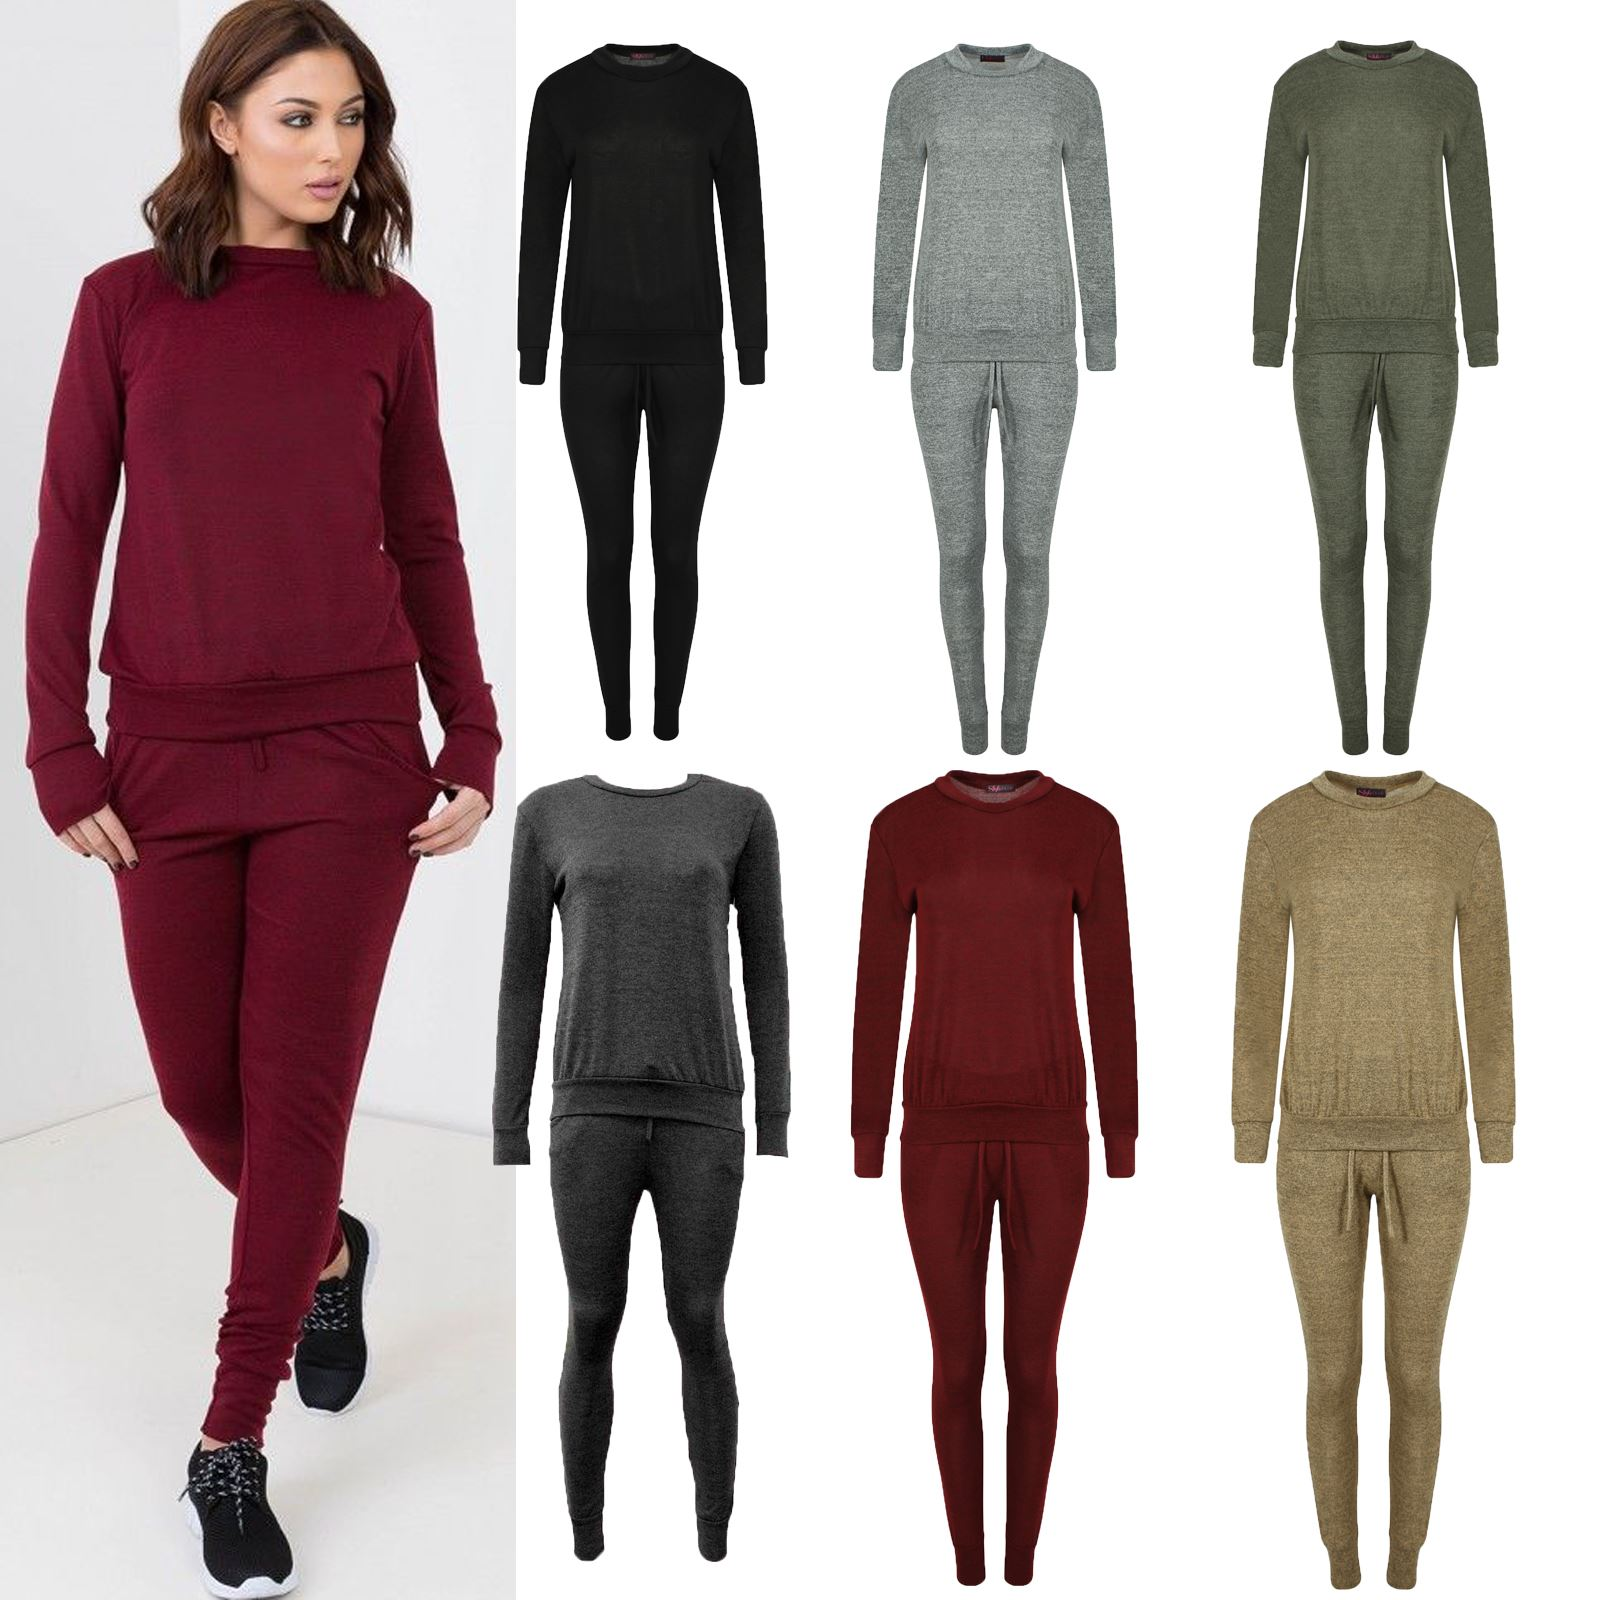 Find great deals on eBay for womens lounge suits. Shop with confidence.